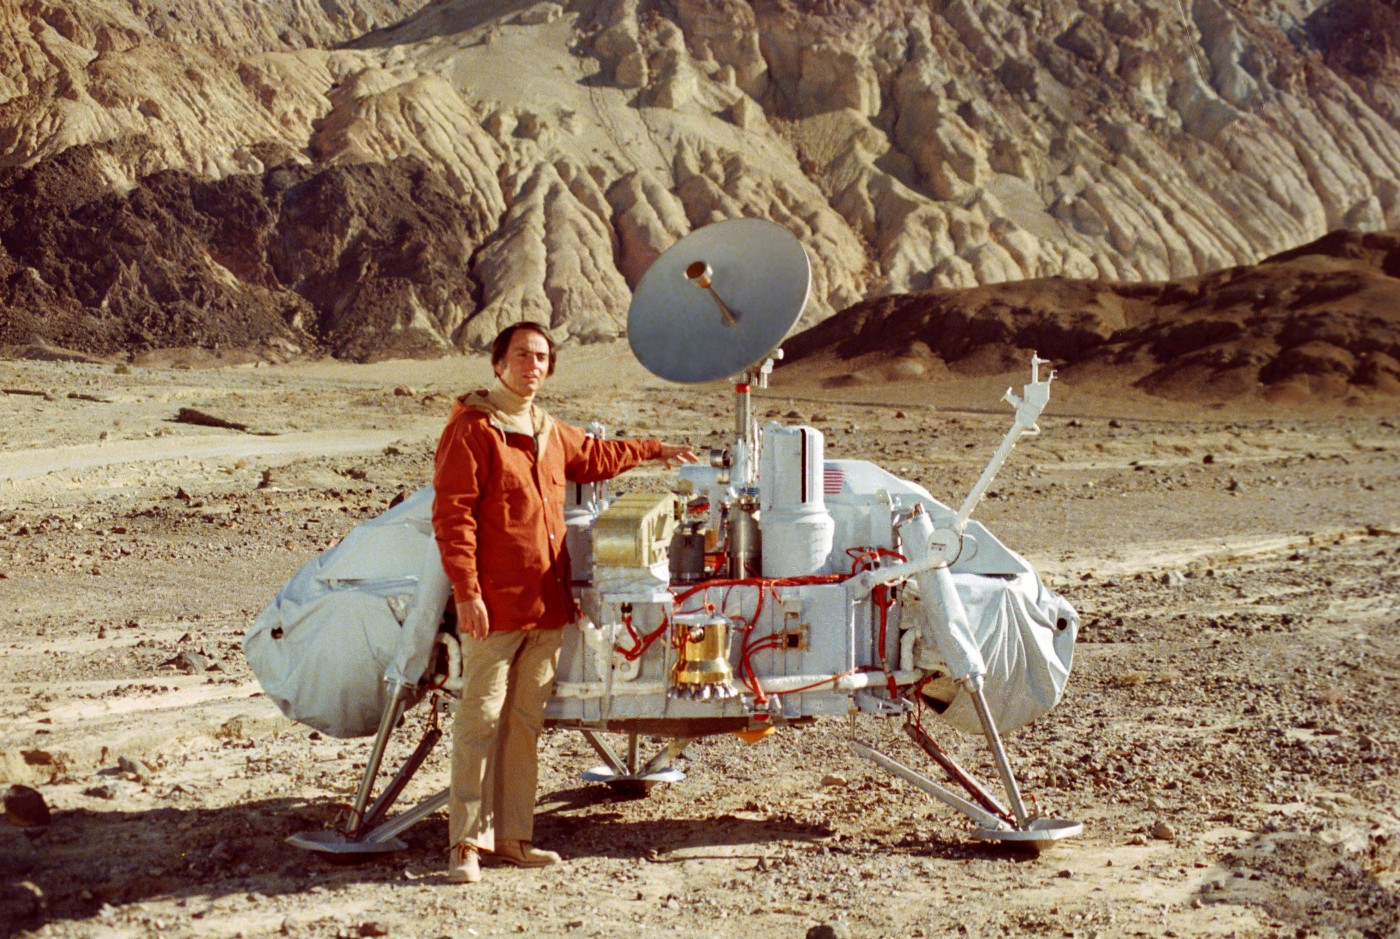 Carl Sagan stands beside a lunar lander craft in an orange jacket and beige slacks.